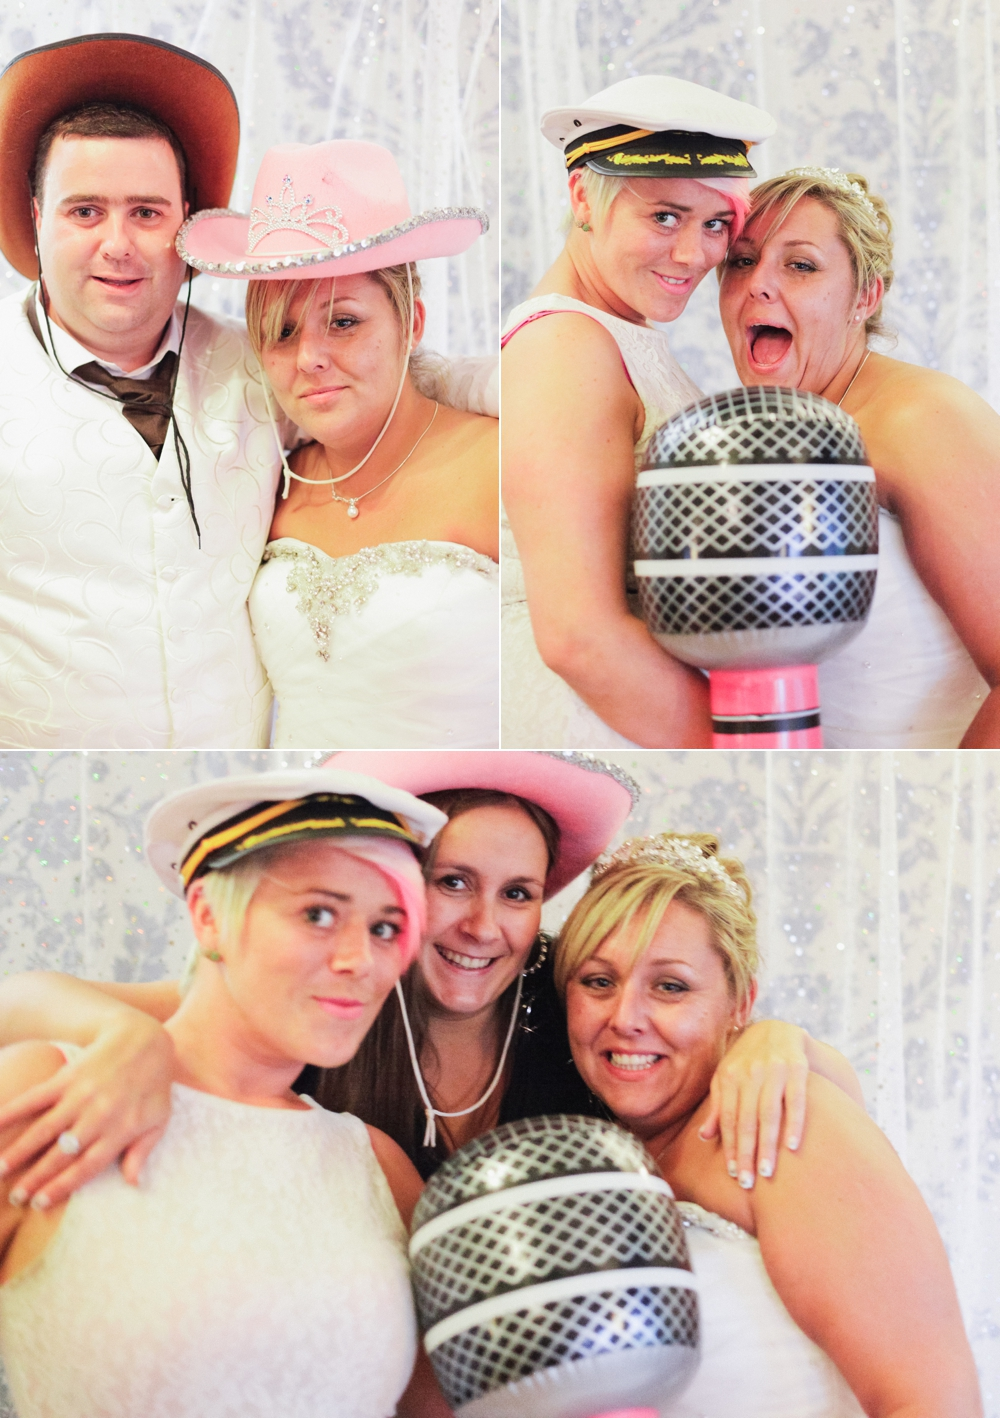 Wedding-Photo-Booth-Essex_0009.jpg